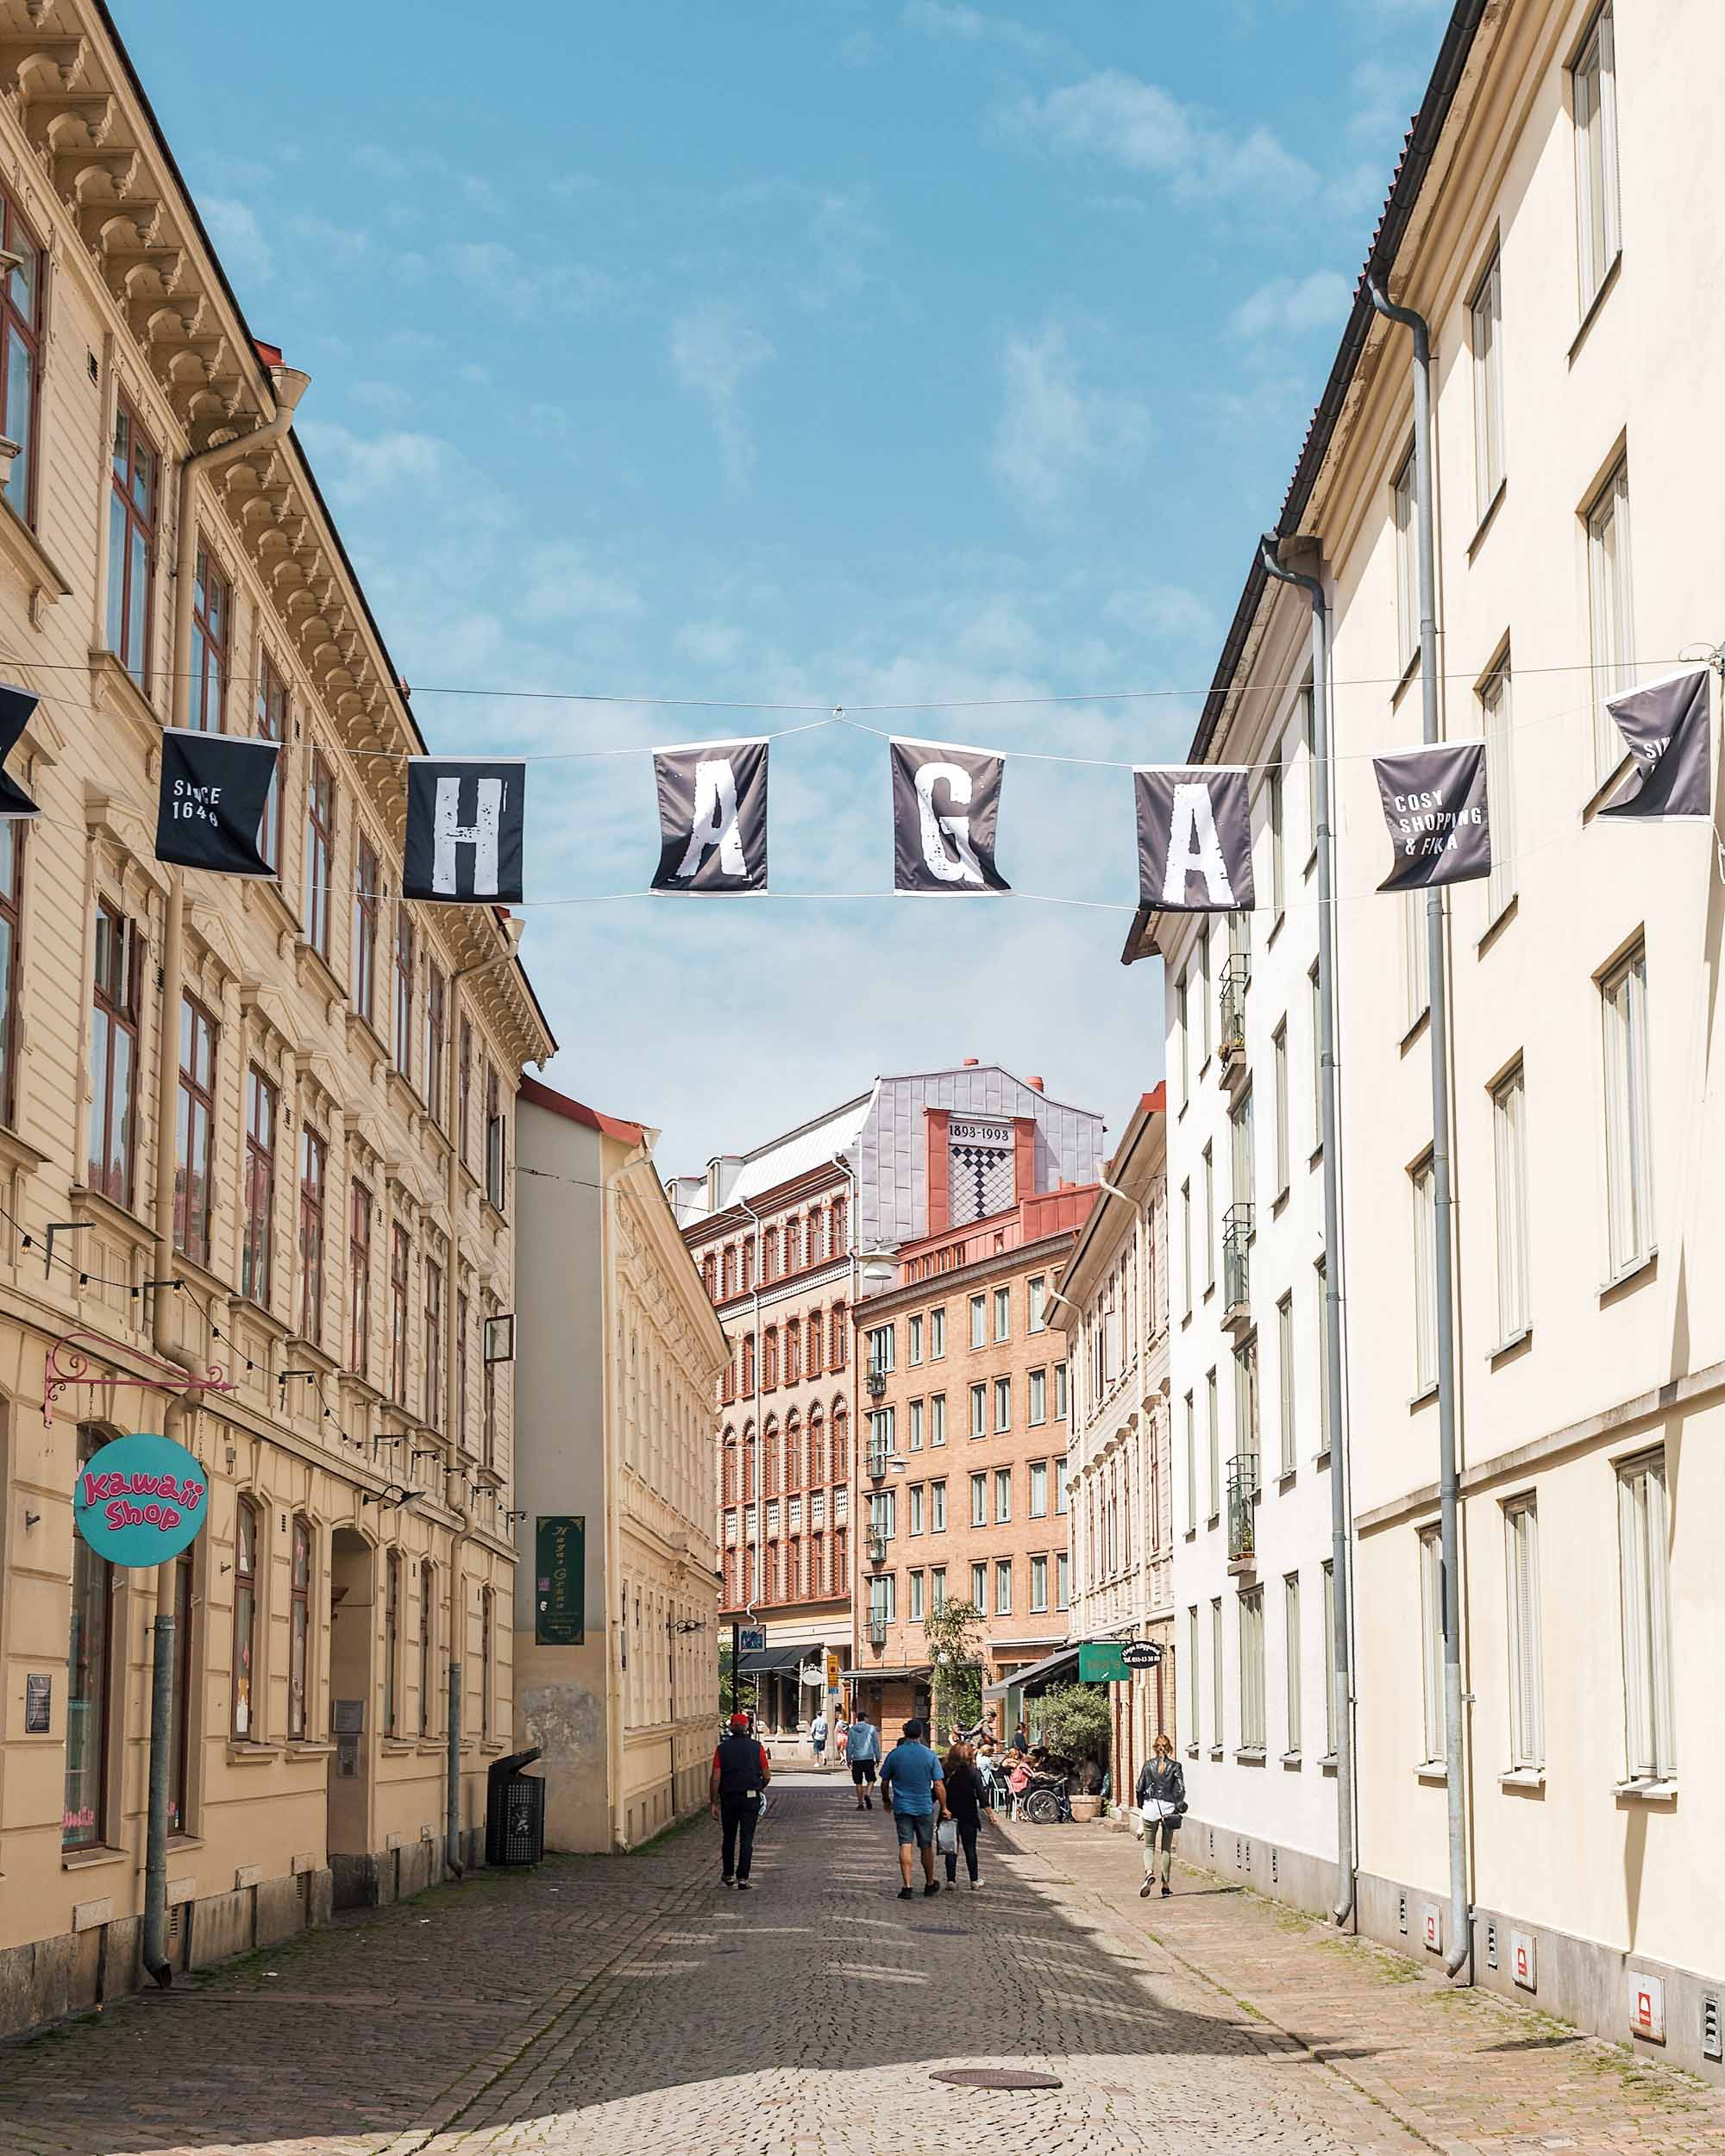 Haga is one of the oldest neighborhoods in Gothenburg, full of beautiful shops, cafes, and cobblestone streets